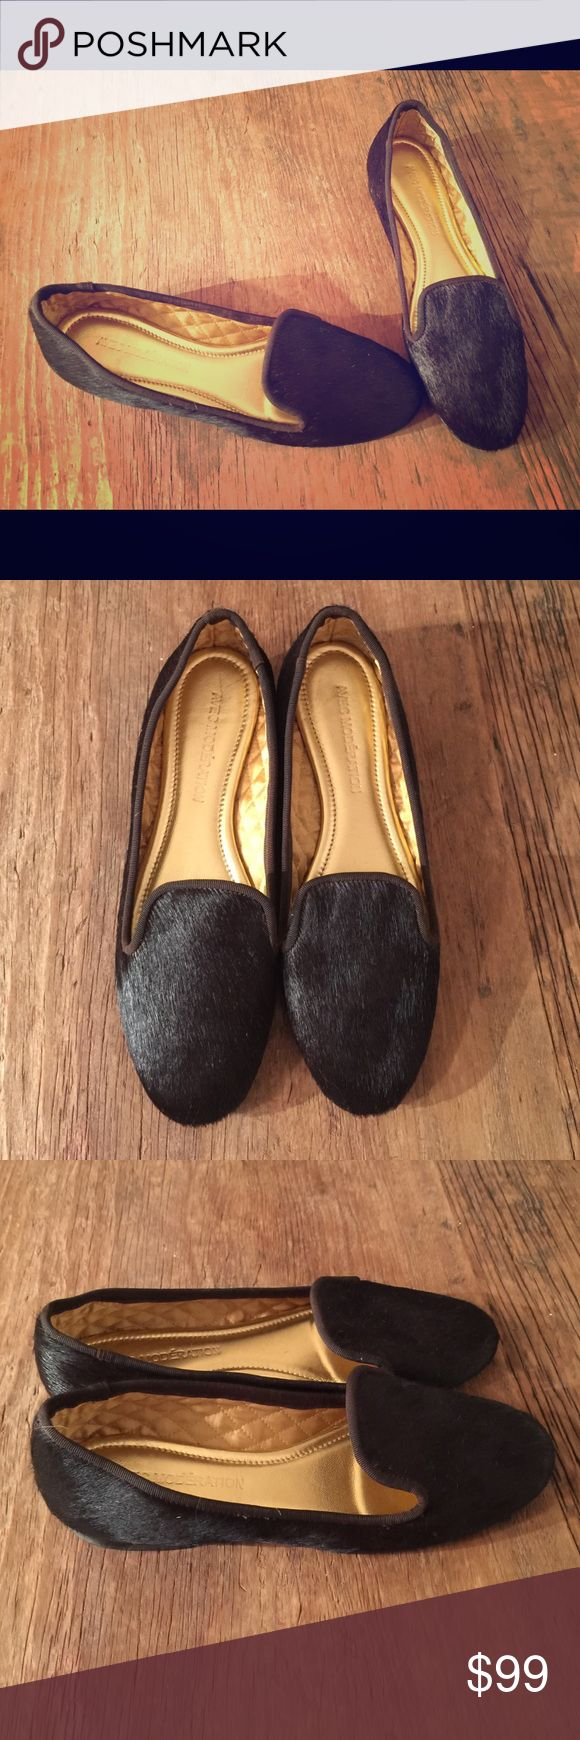 Avec Moderation Moccasins. Size 5 Brown Pony Hair. Size 5.  Brown pony hair.  Worn twice. Leather Sole (few scratches from wearing).  Quilted lining.  Flat heel.  Made in Italy.  Super cute.  Super comfortable.  Feel free to make an offer! Avec Moderation Shoes Flats & Loafers